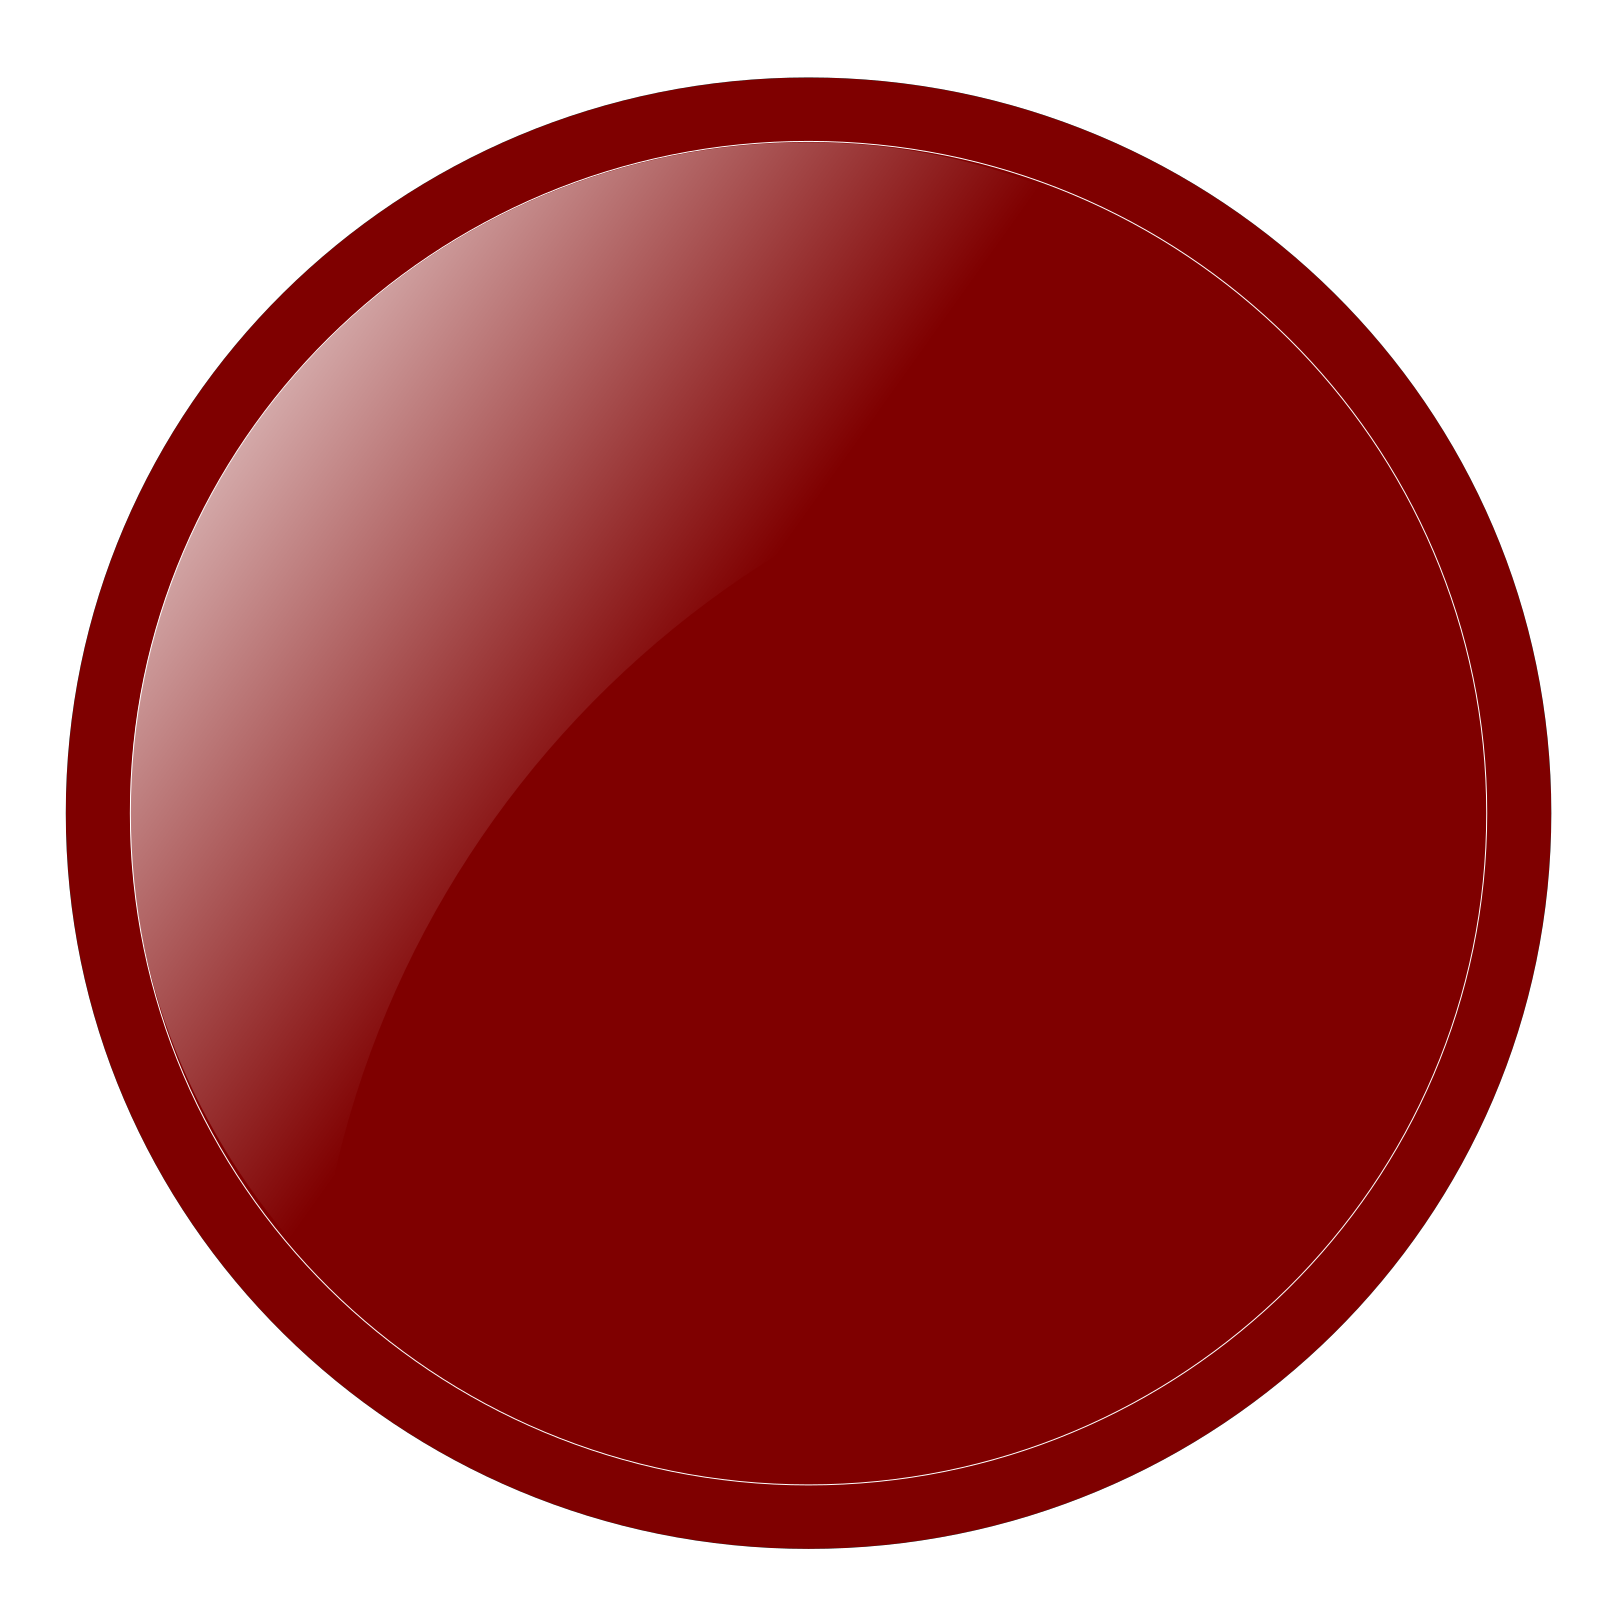 Red Circle Clip art, Icon and SVG - SVG Clipart